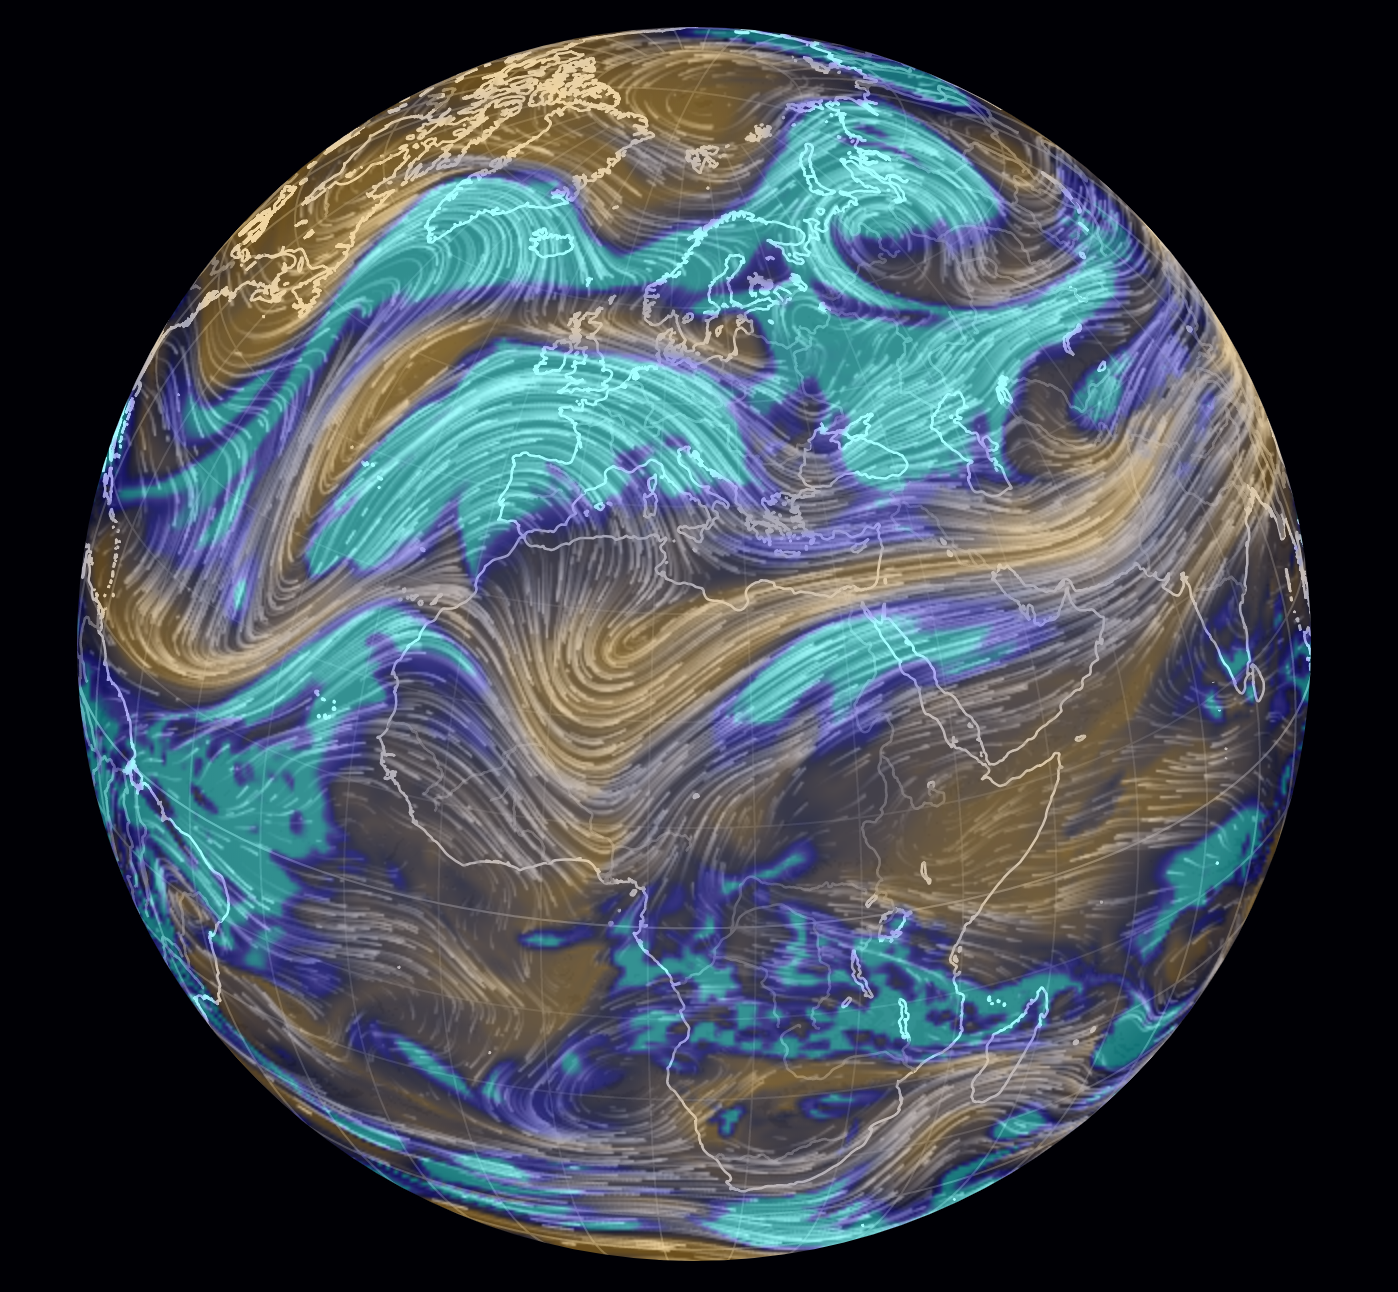 earth____a_global_map_of_wind__weather__and_ocean_conditions